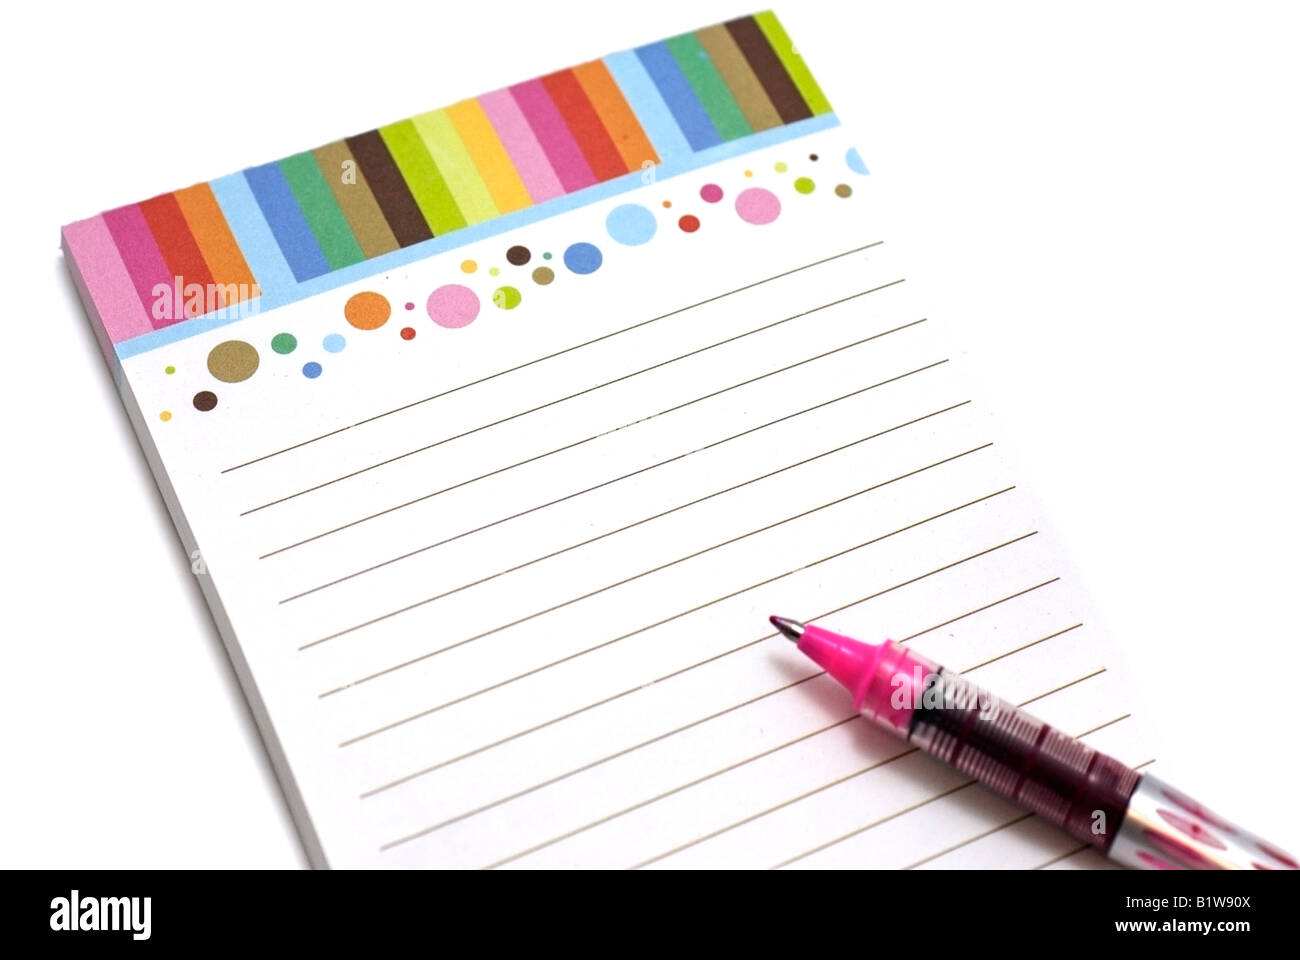 Memo / Note Pad - Stock Image